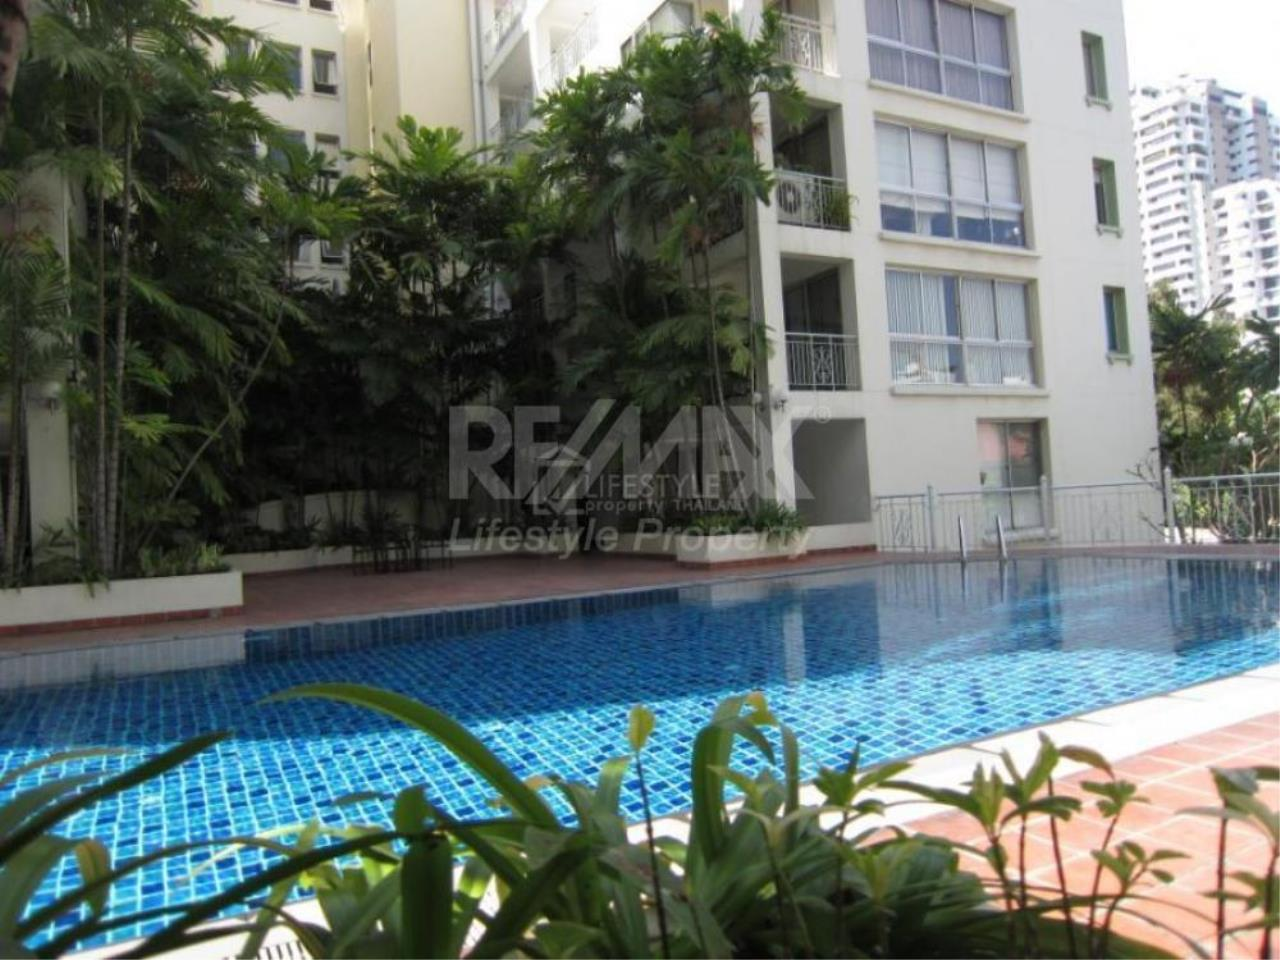 RE/MAX LifeStyle Property Agency's Raintree Villa Thonglor 7